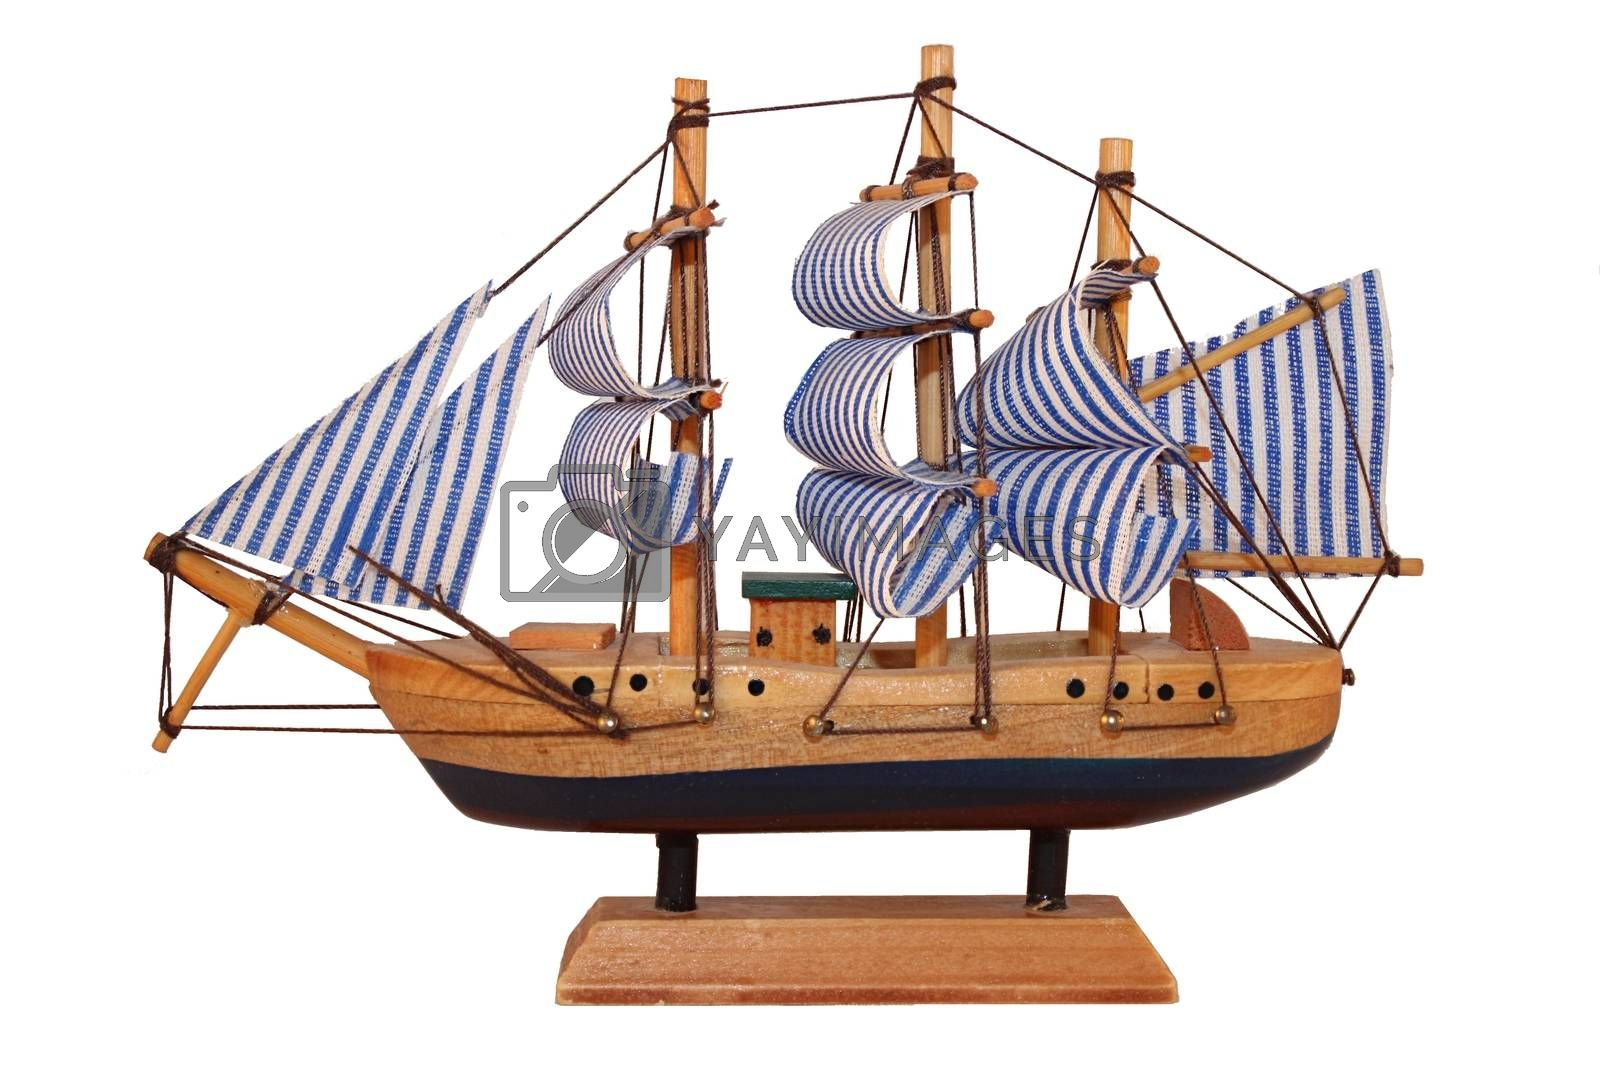 Wooden ship, toy model. by YaSher